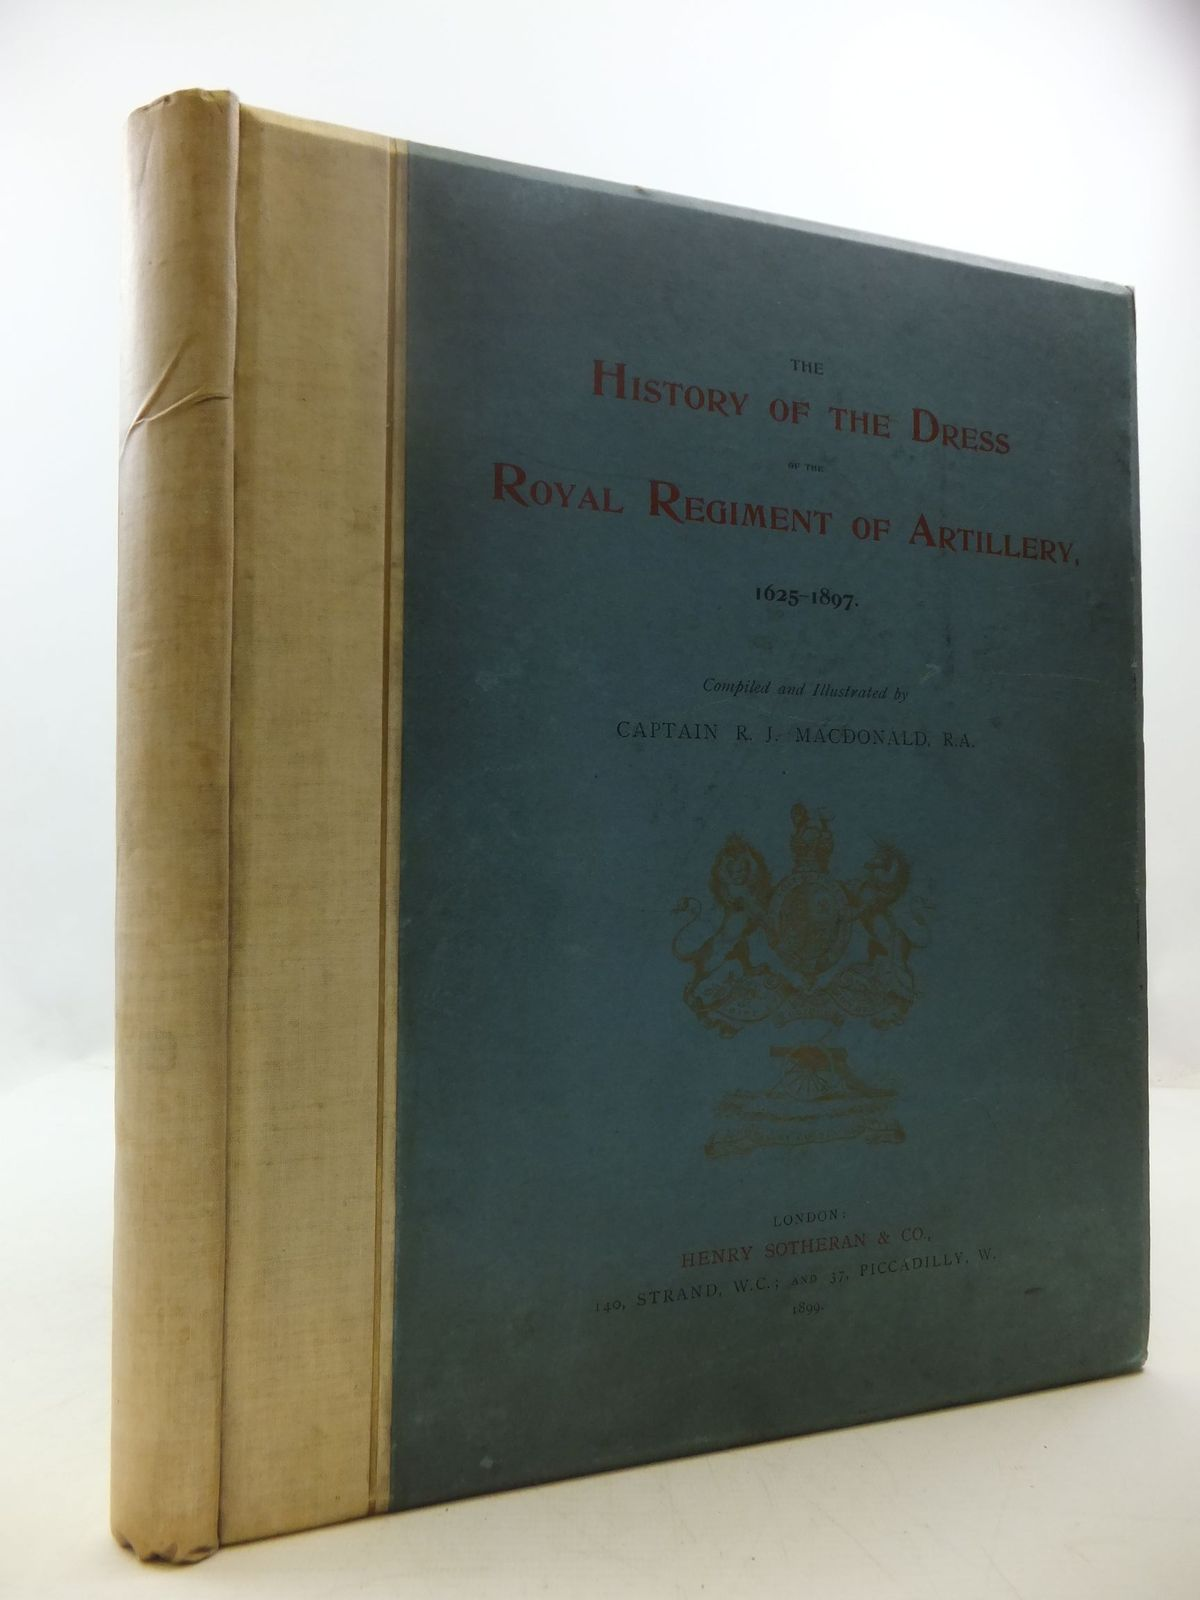 Photo of THE HISTORY OF THE DRESS OF THE ROYAL REGIMENT OF ARTILLERY 1625-1897 written by Macdonald, R.J. illustrated by Macdonald, R.J. published by Henry Sotheran & Co. (STOCK CODE: 1708686)  for sale by Stella & Rose's Books